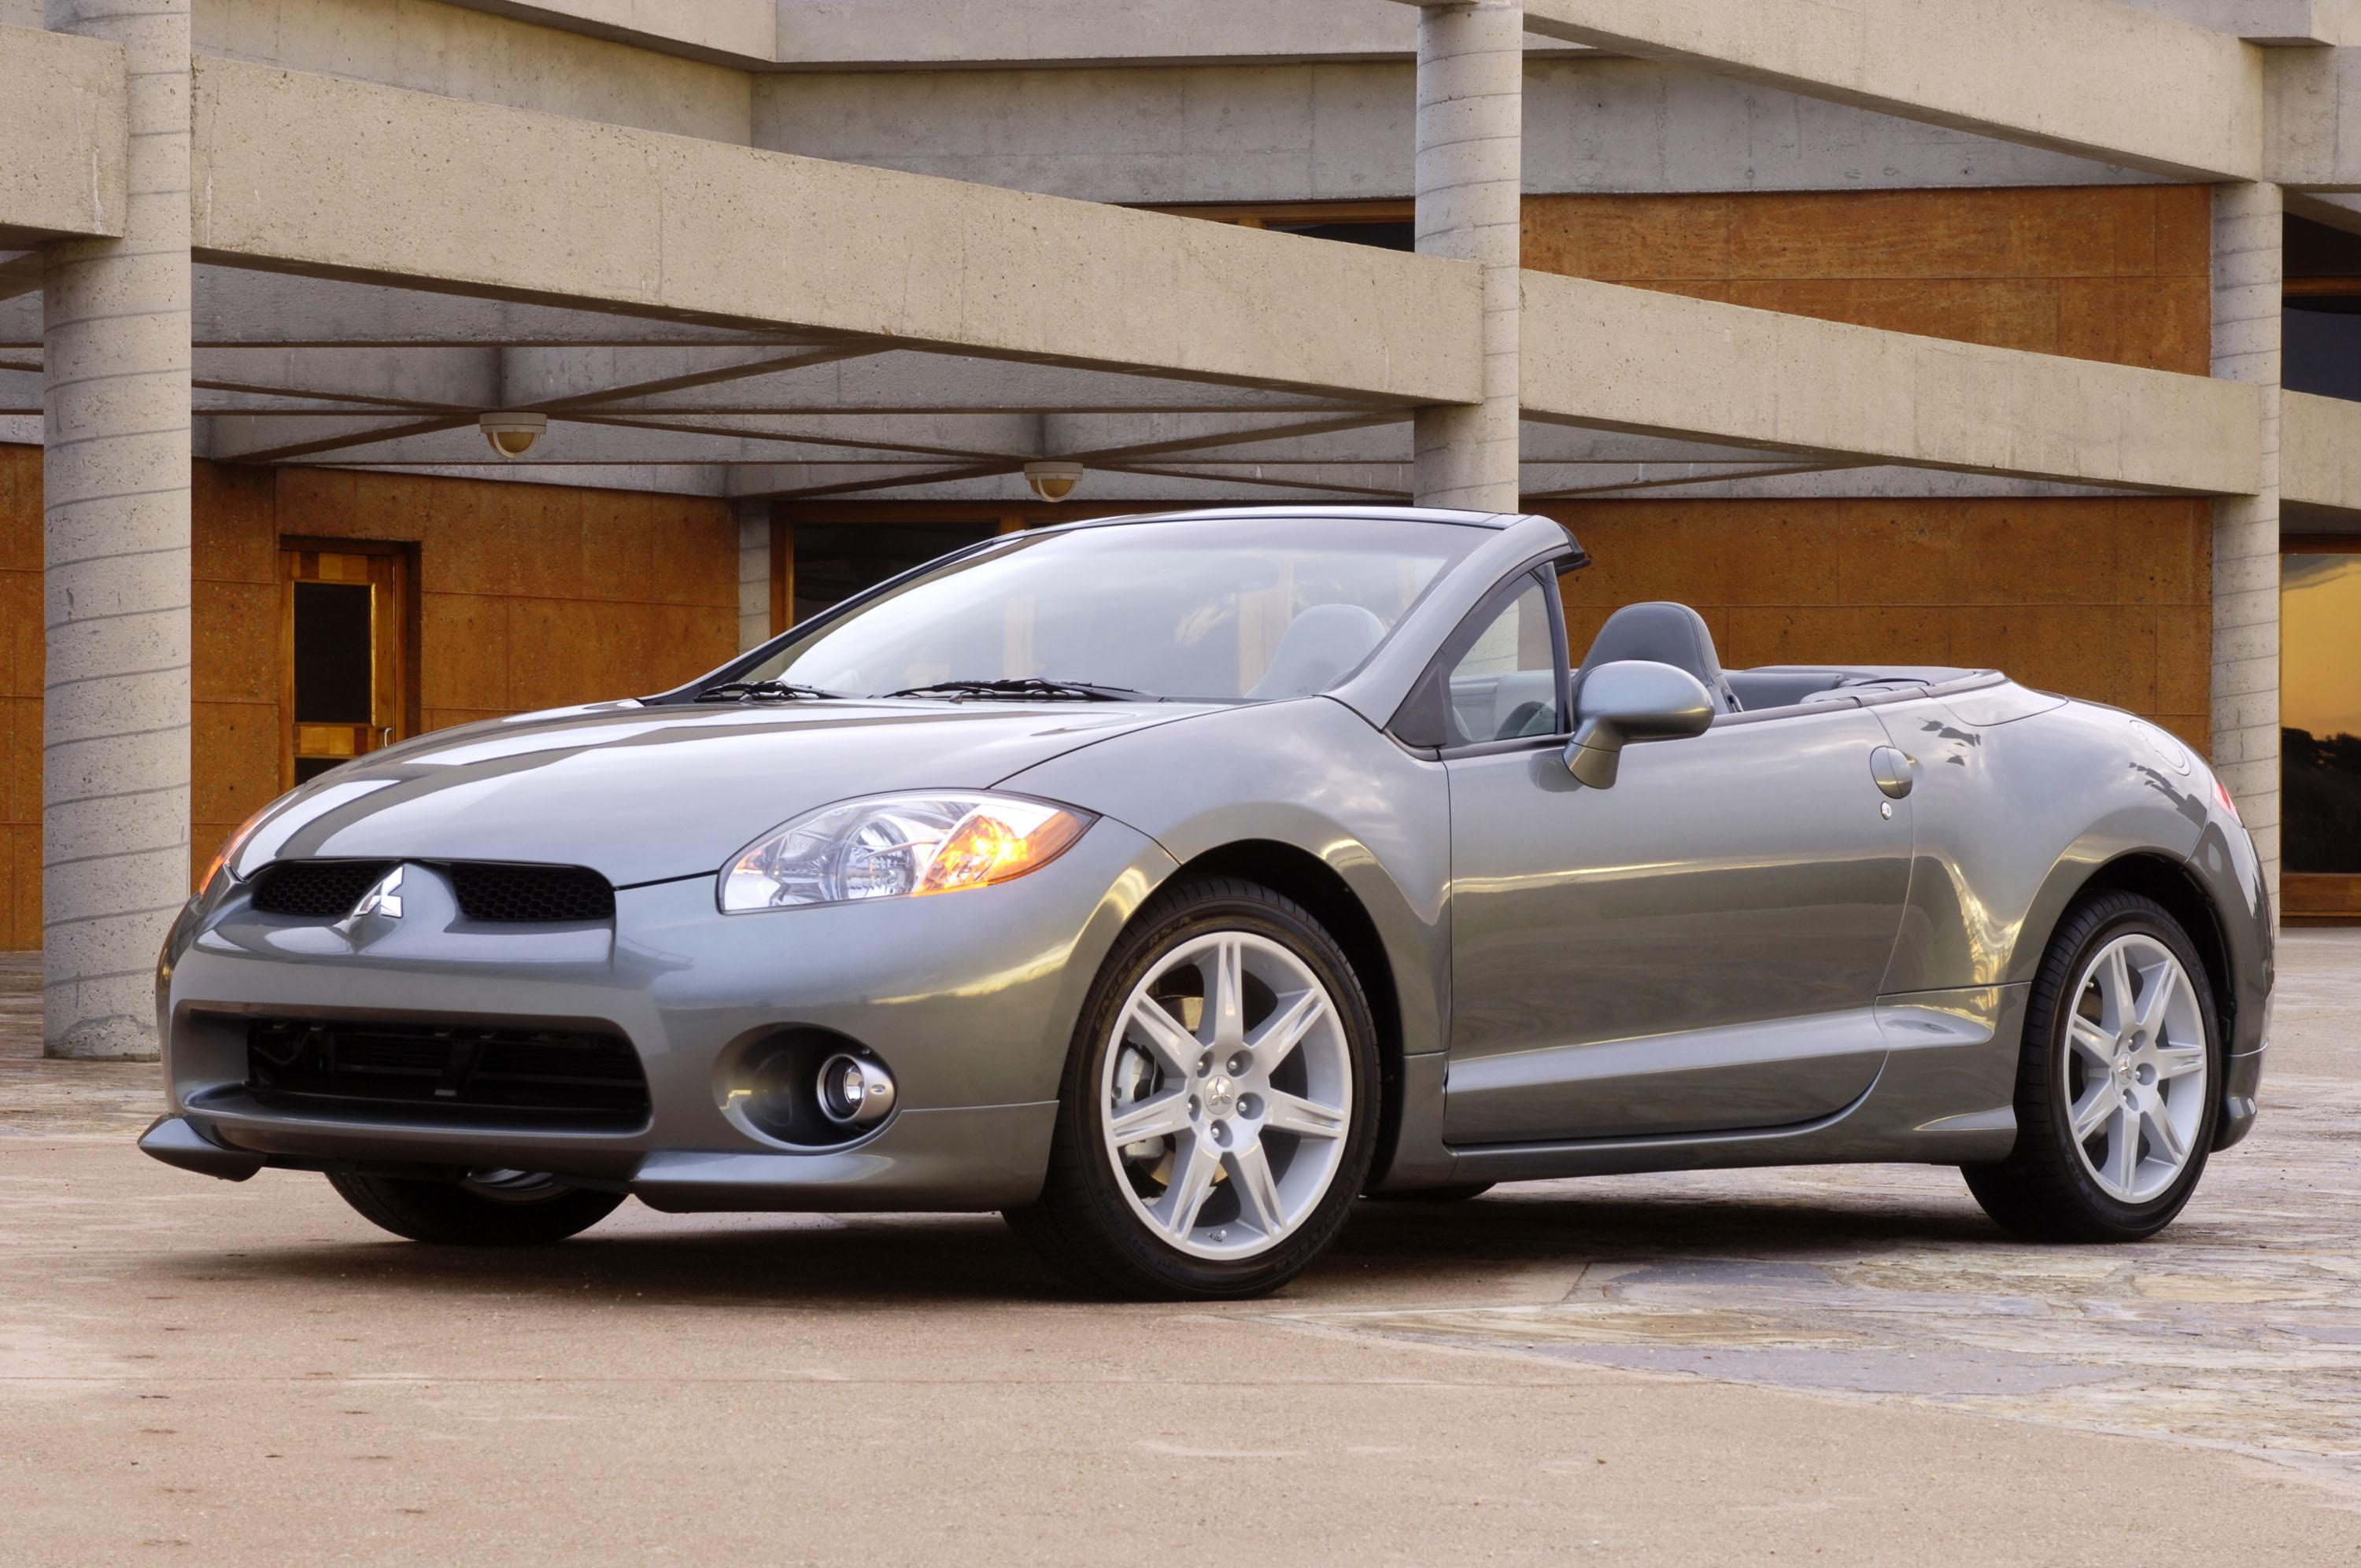 eclipse gt contact veh spyder convertible in pelham nh mitsubishi